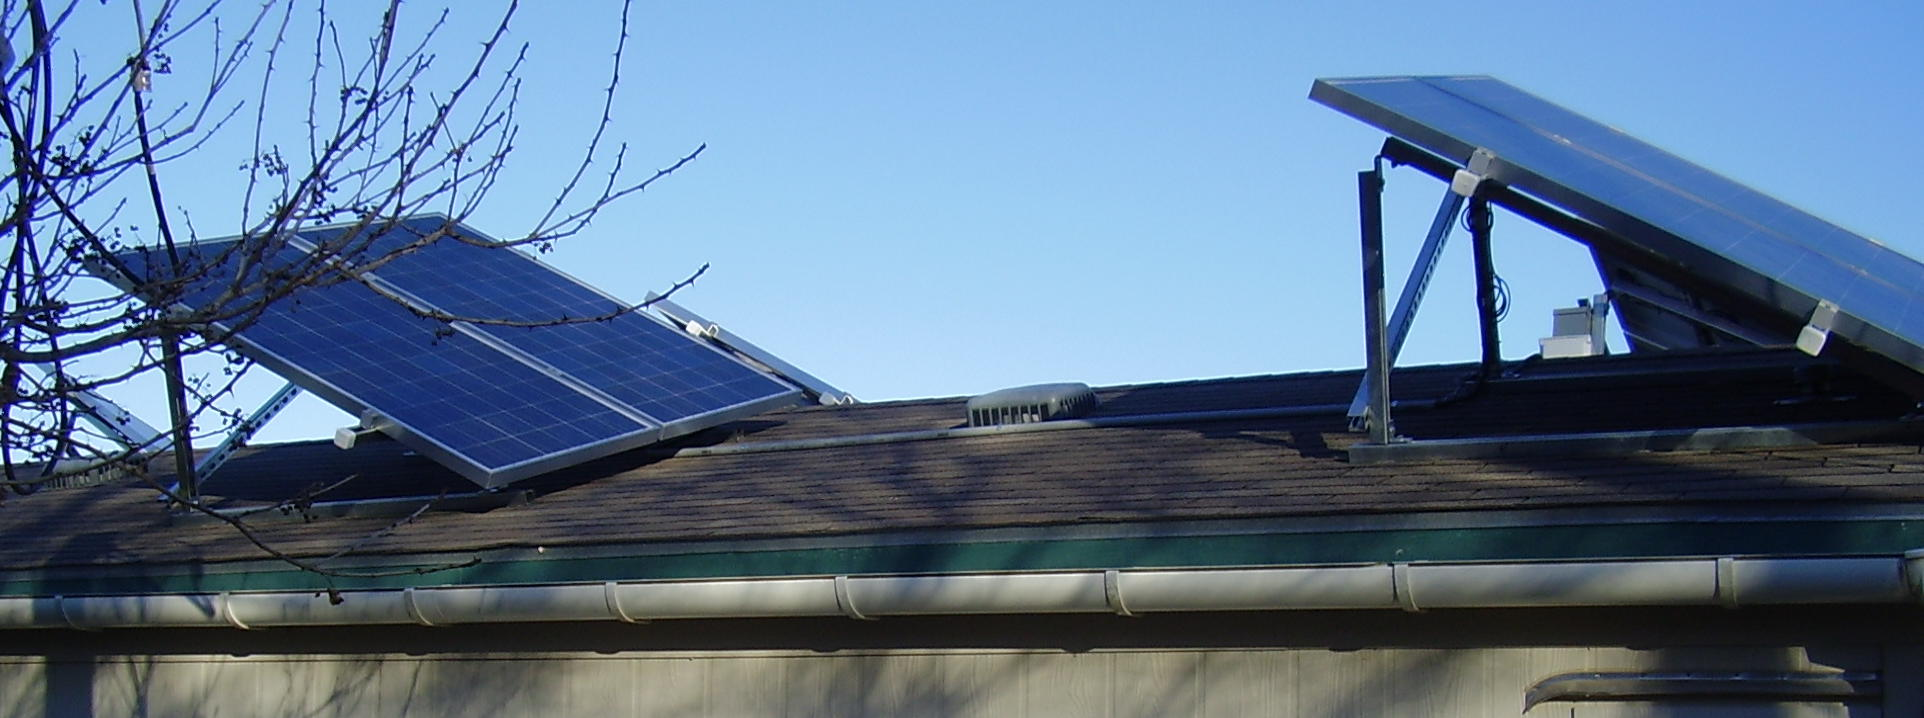 1924x718 Old-style solar mounts, 2006, Solar on roof, in Agenda: Solar Rocks for the Equinox --Suwannee Riverkeeper will be speaking, by John S. Quarterman, for WWALS.net, 23 September 2017